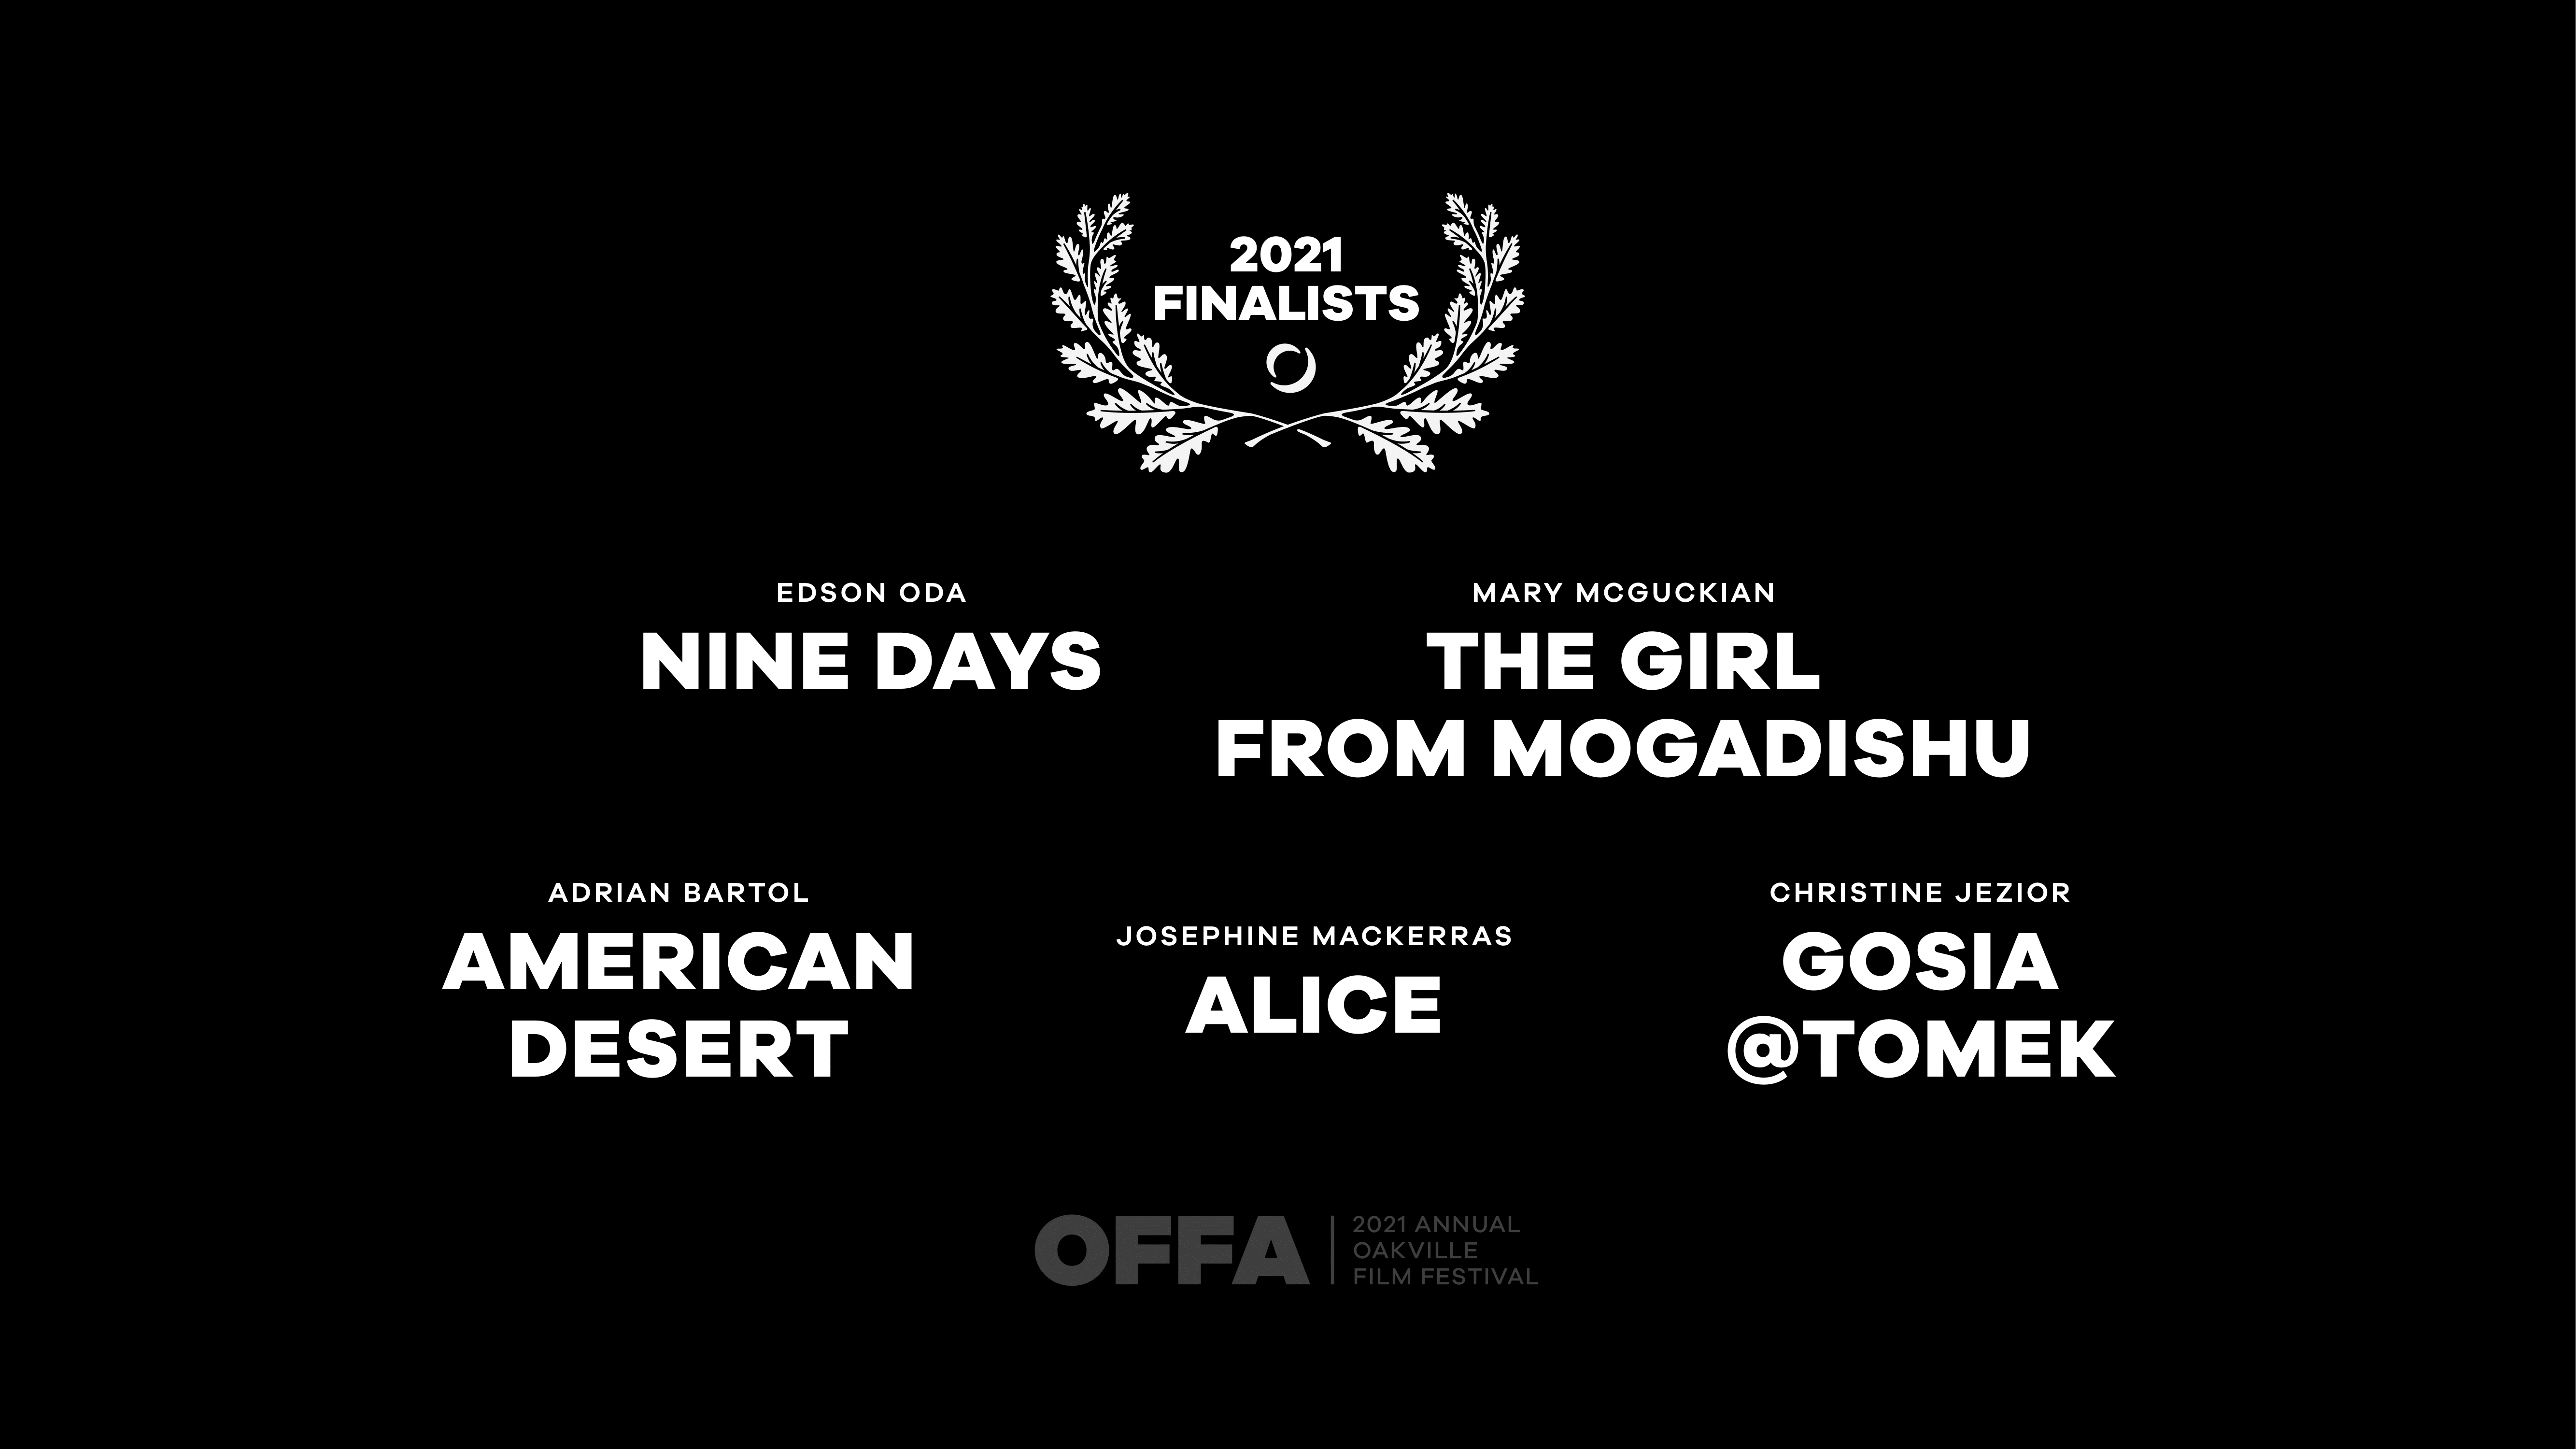 OFFA 2021 Best International Feature Film or Documentary Finalists